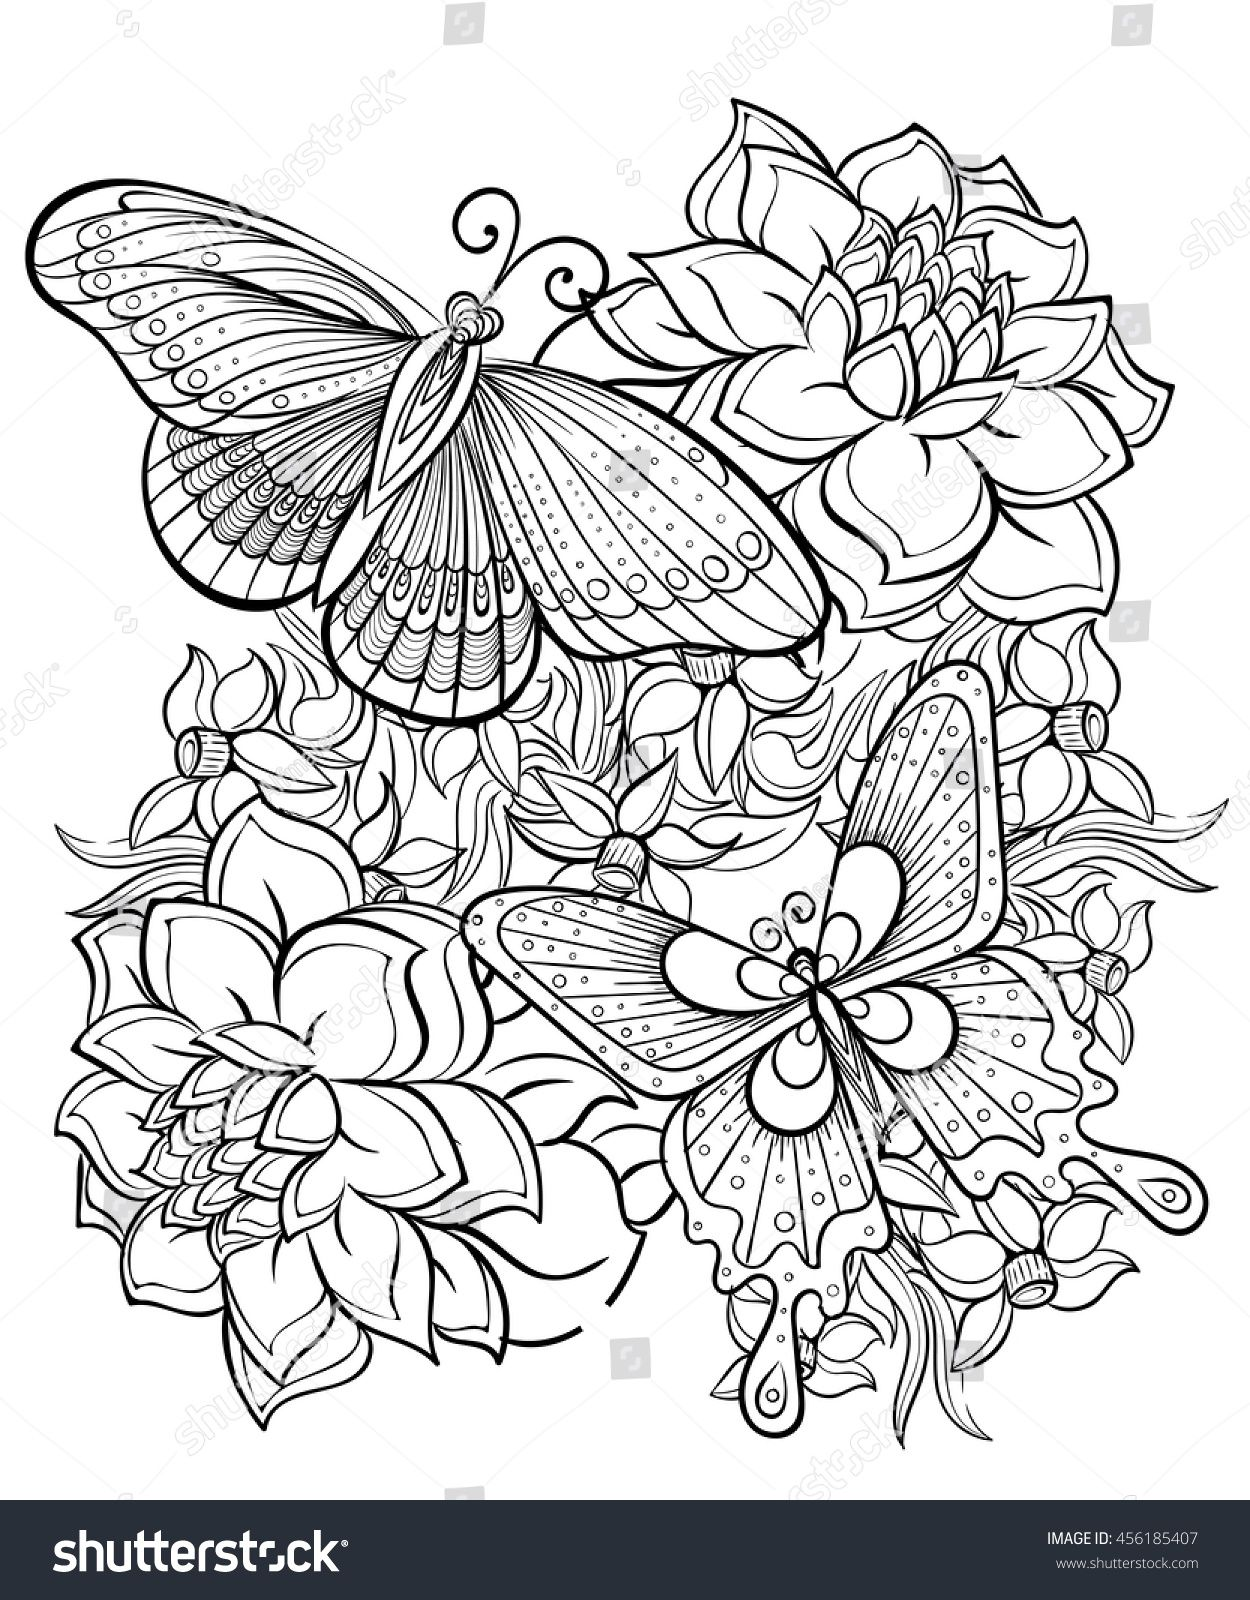 Coloring Book For Adult Vector Illustration